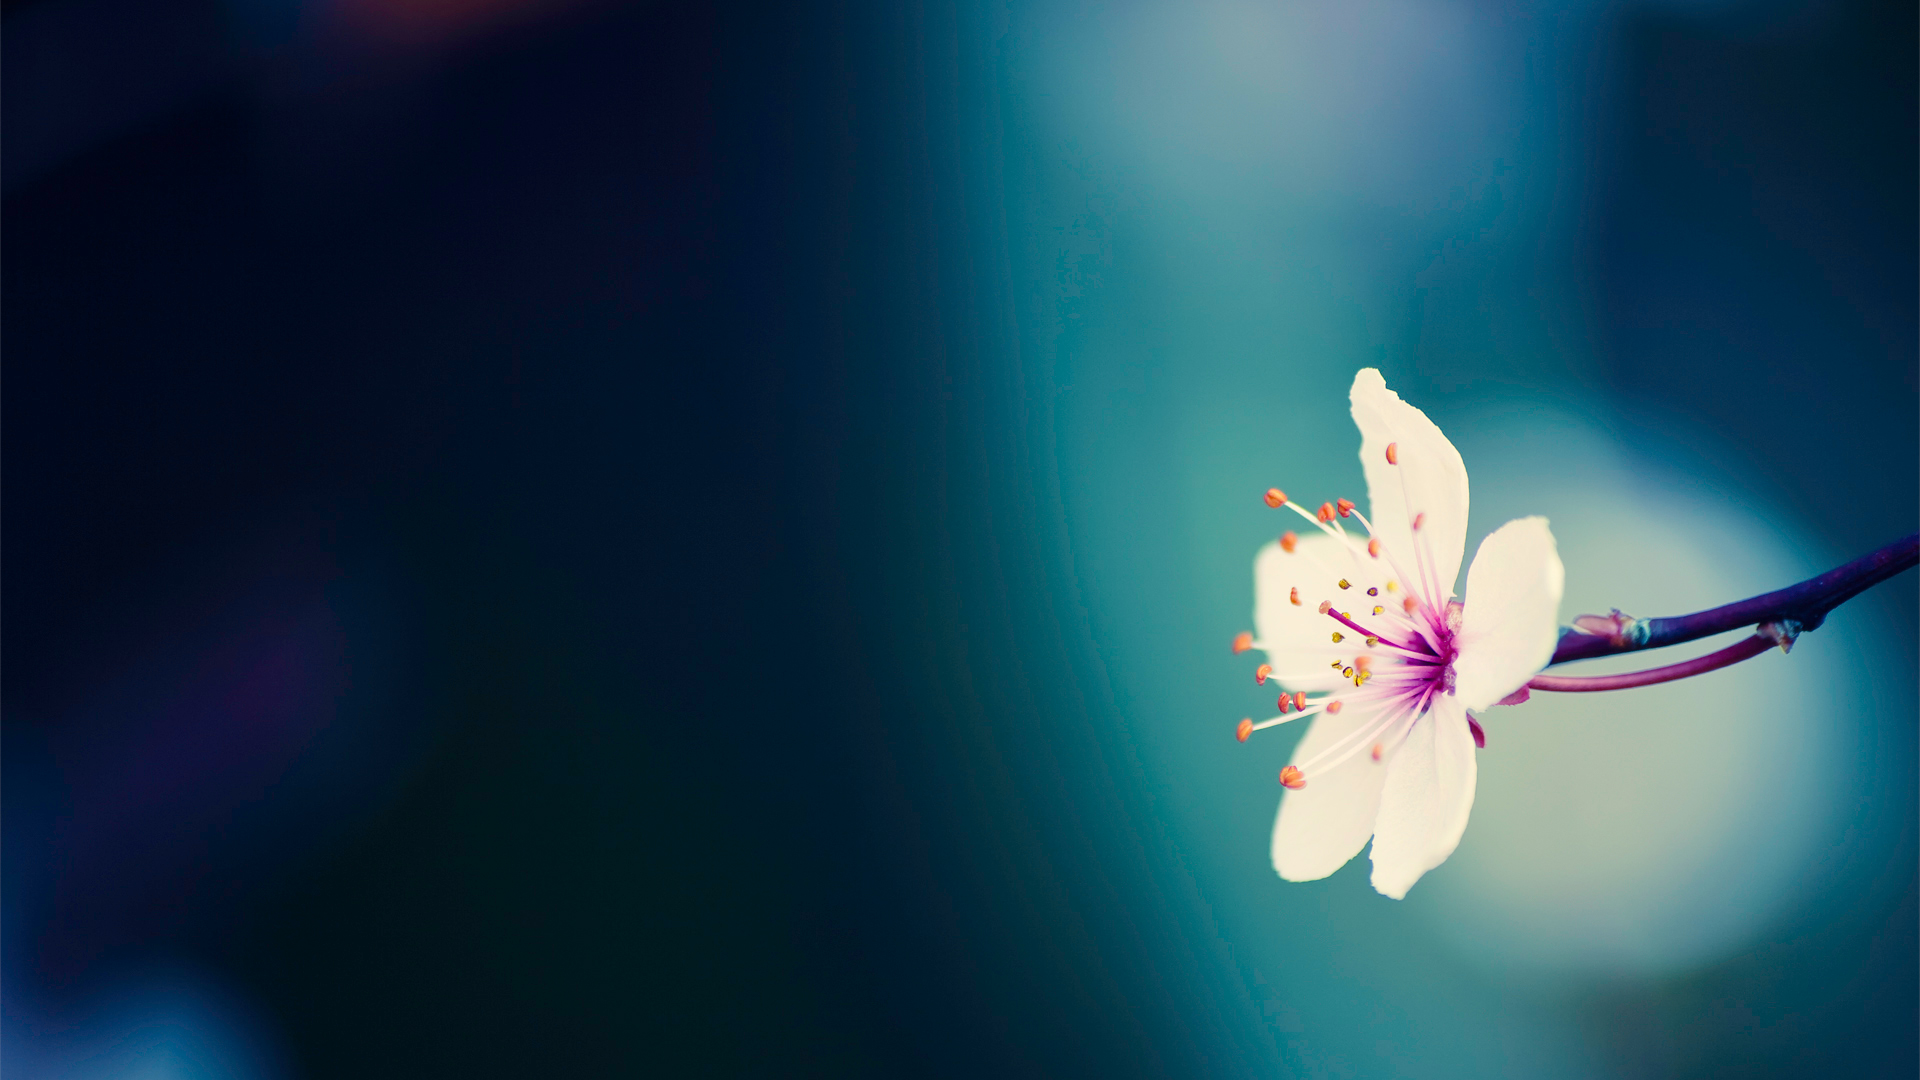 Spring Flower Background   Wallpaper 260 1920x1080